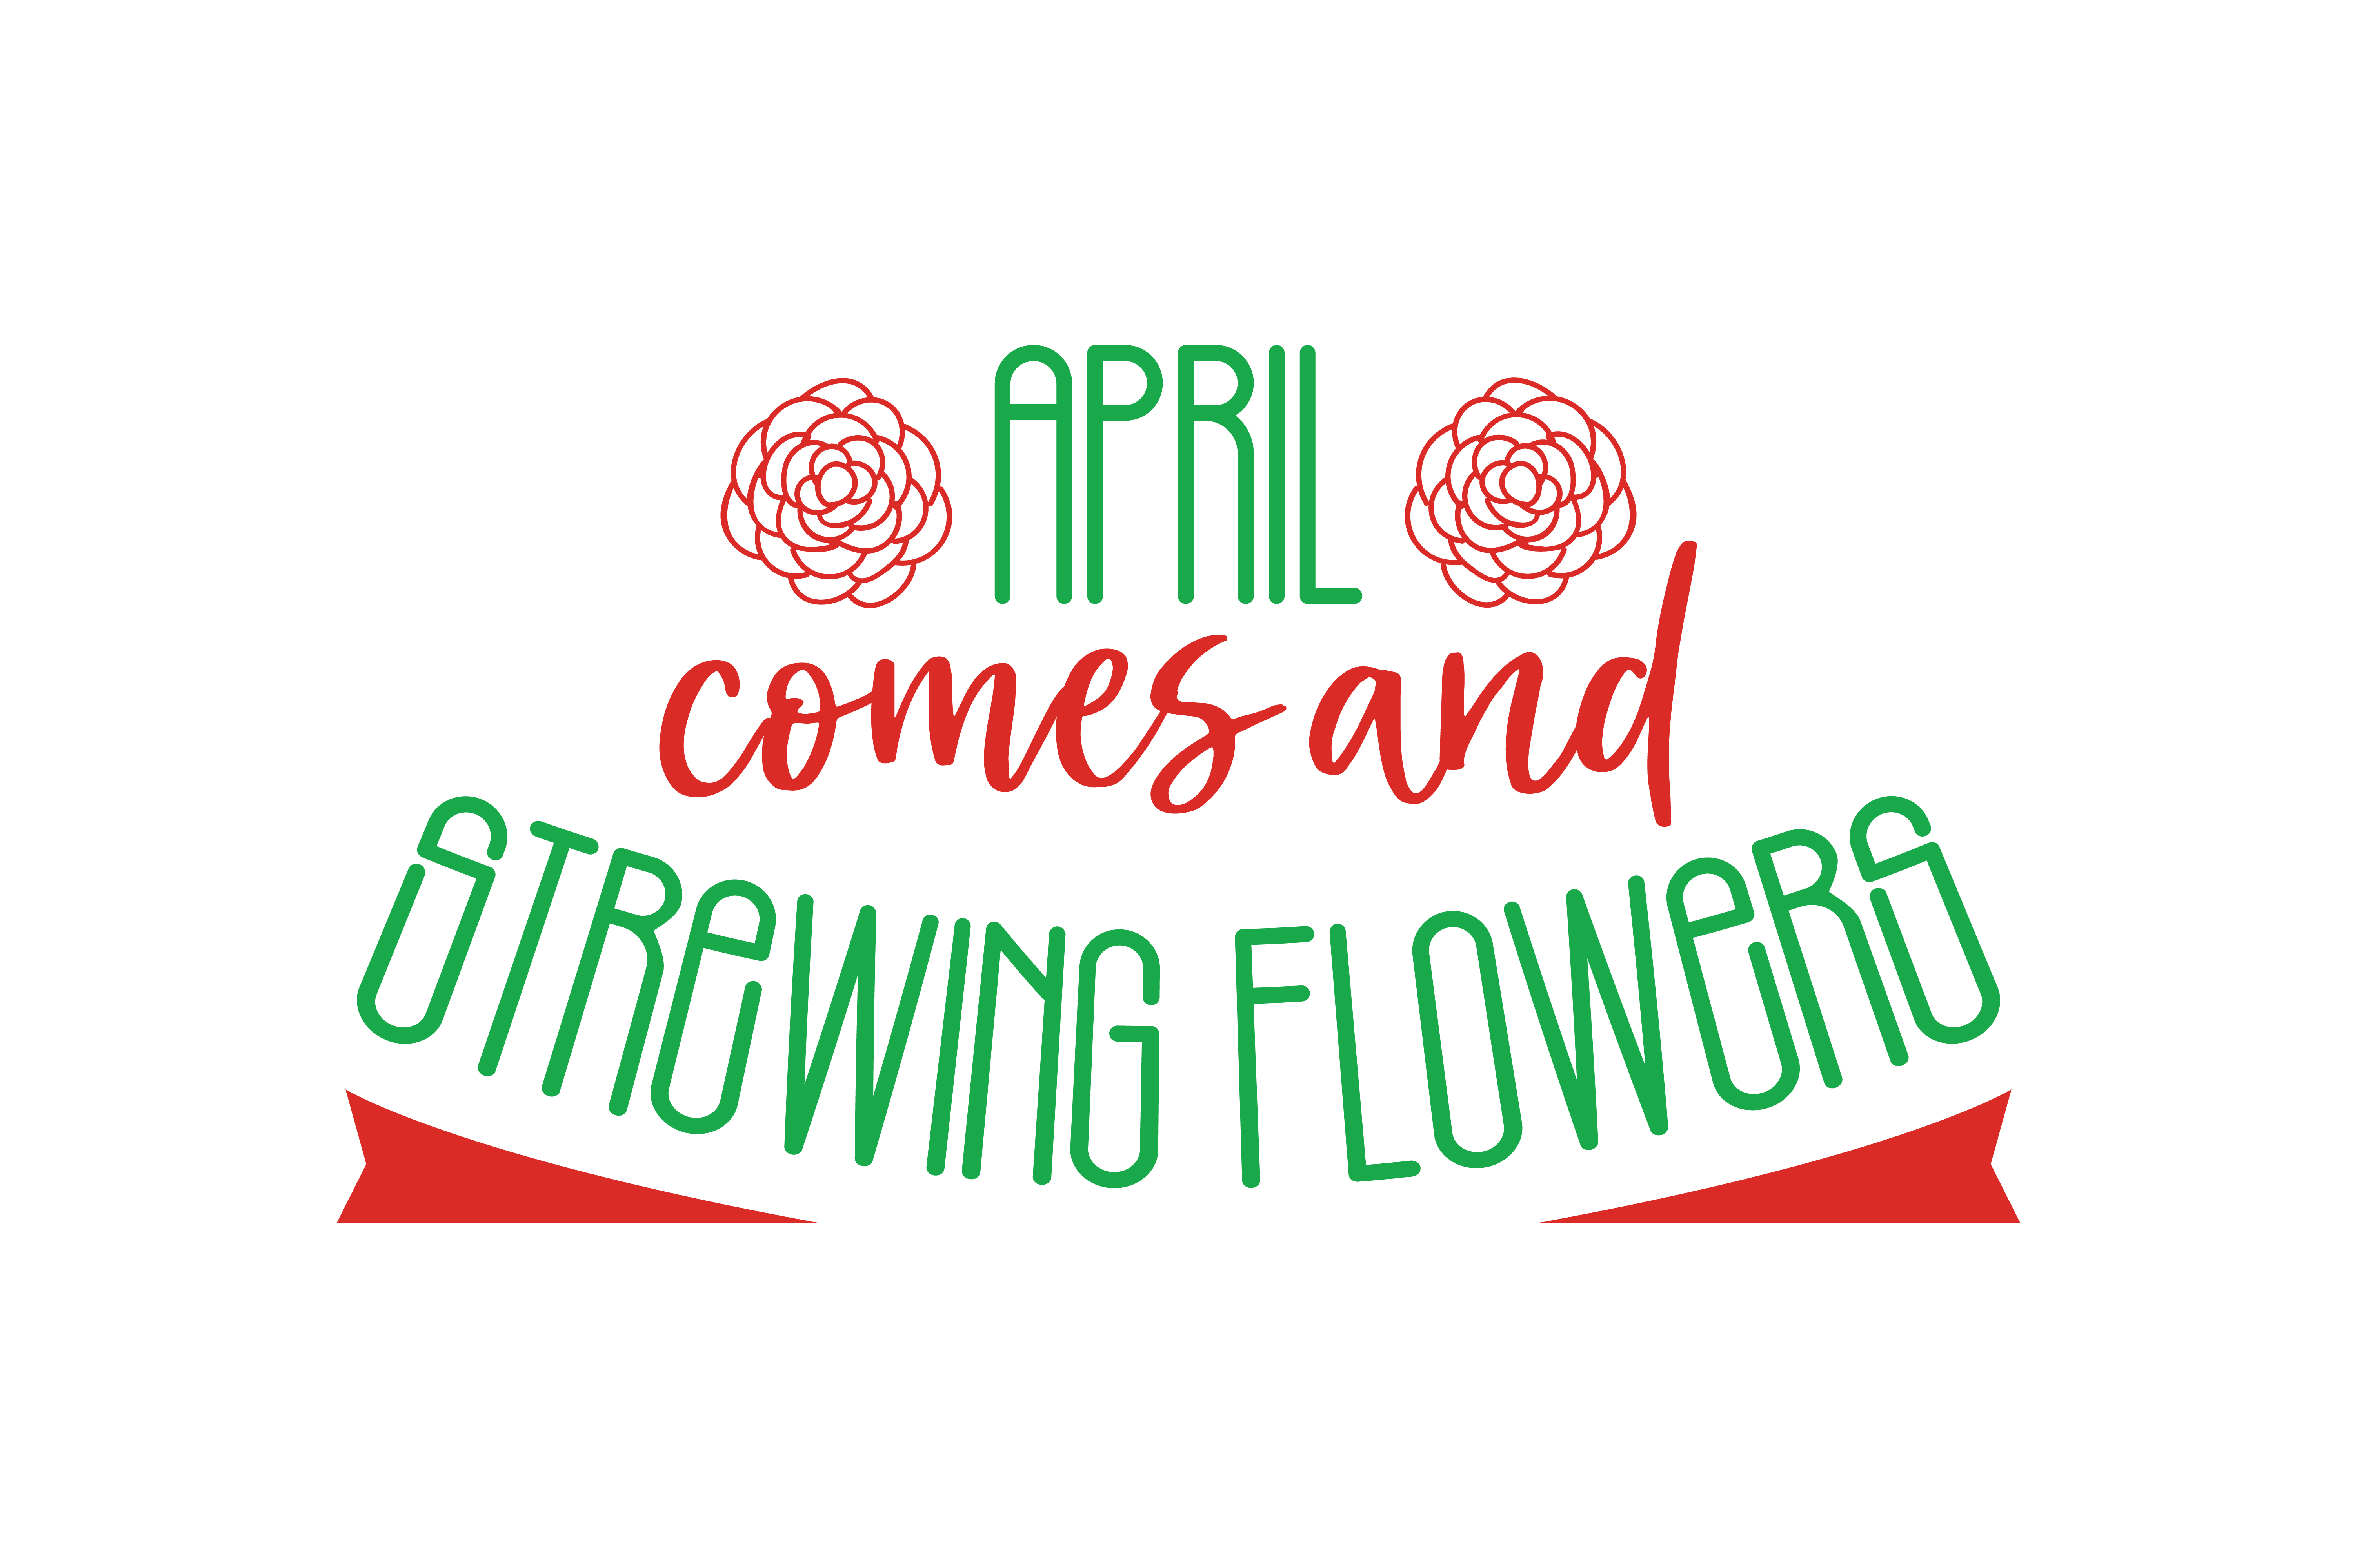 Download Free April Comes Like An Idiot Babbling And Strewing Flowers Quote for Cricut Explore, Silhouette and other cutting machines.